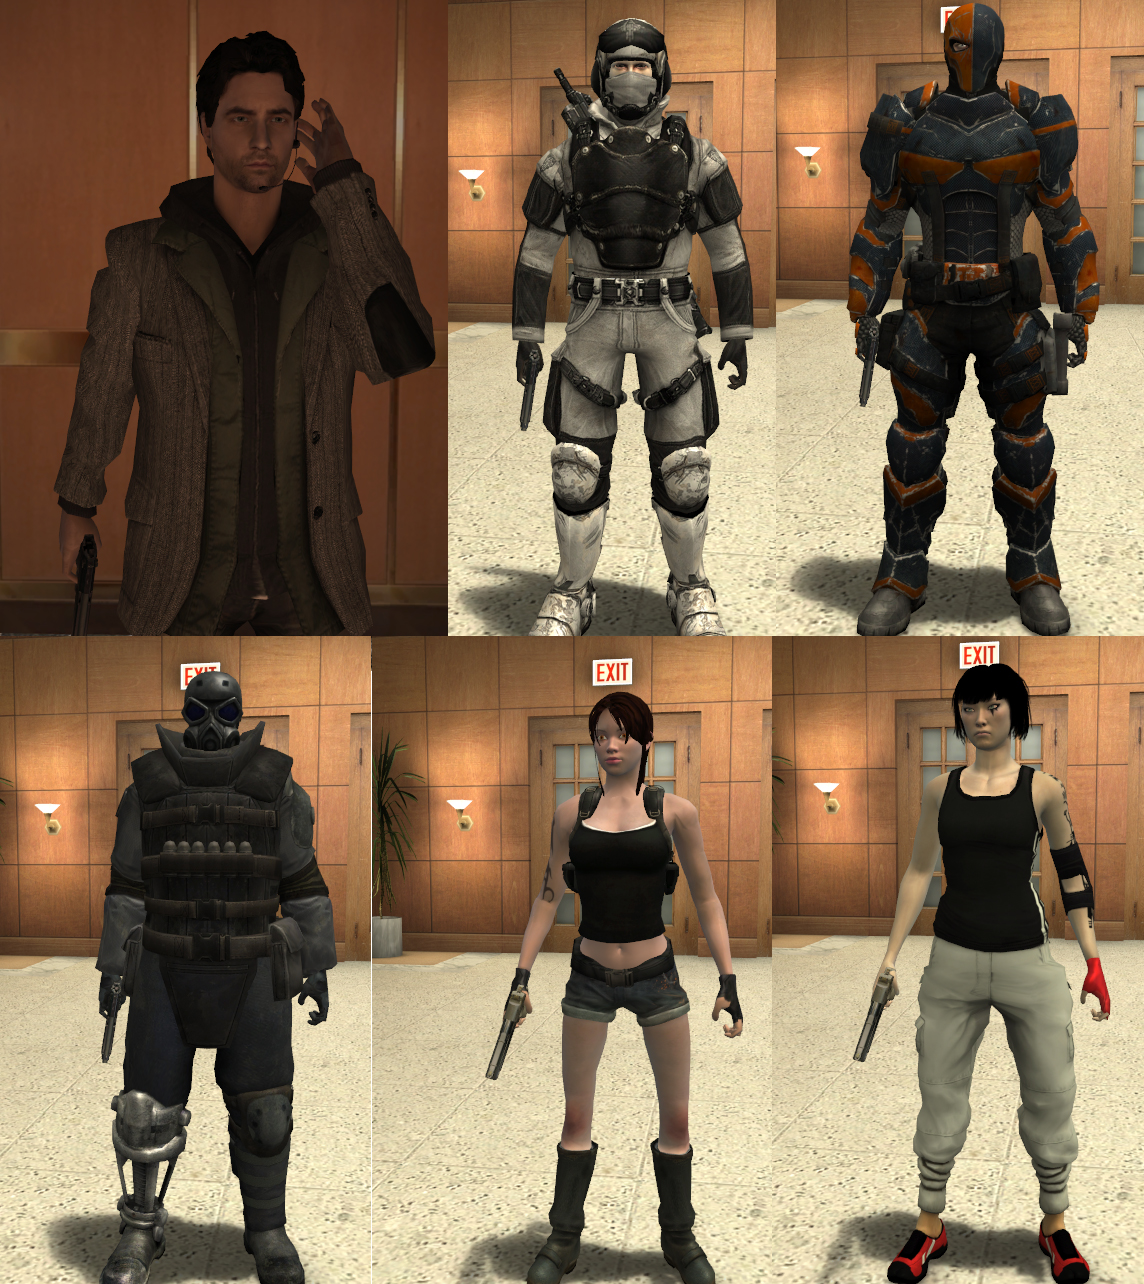 Antievil S Player Models Pack Addon Max Payne 2 Mod Db